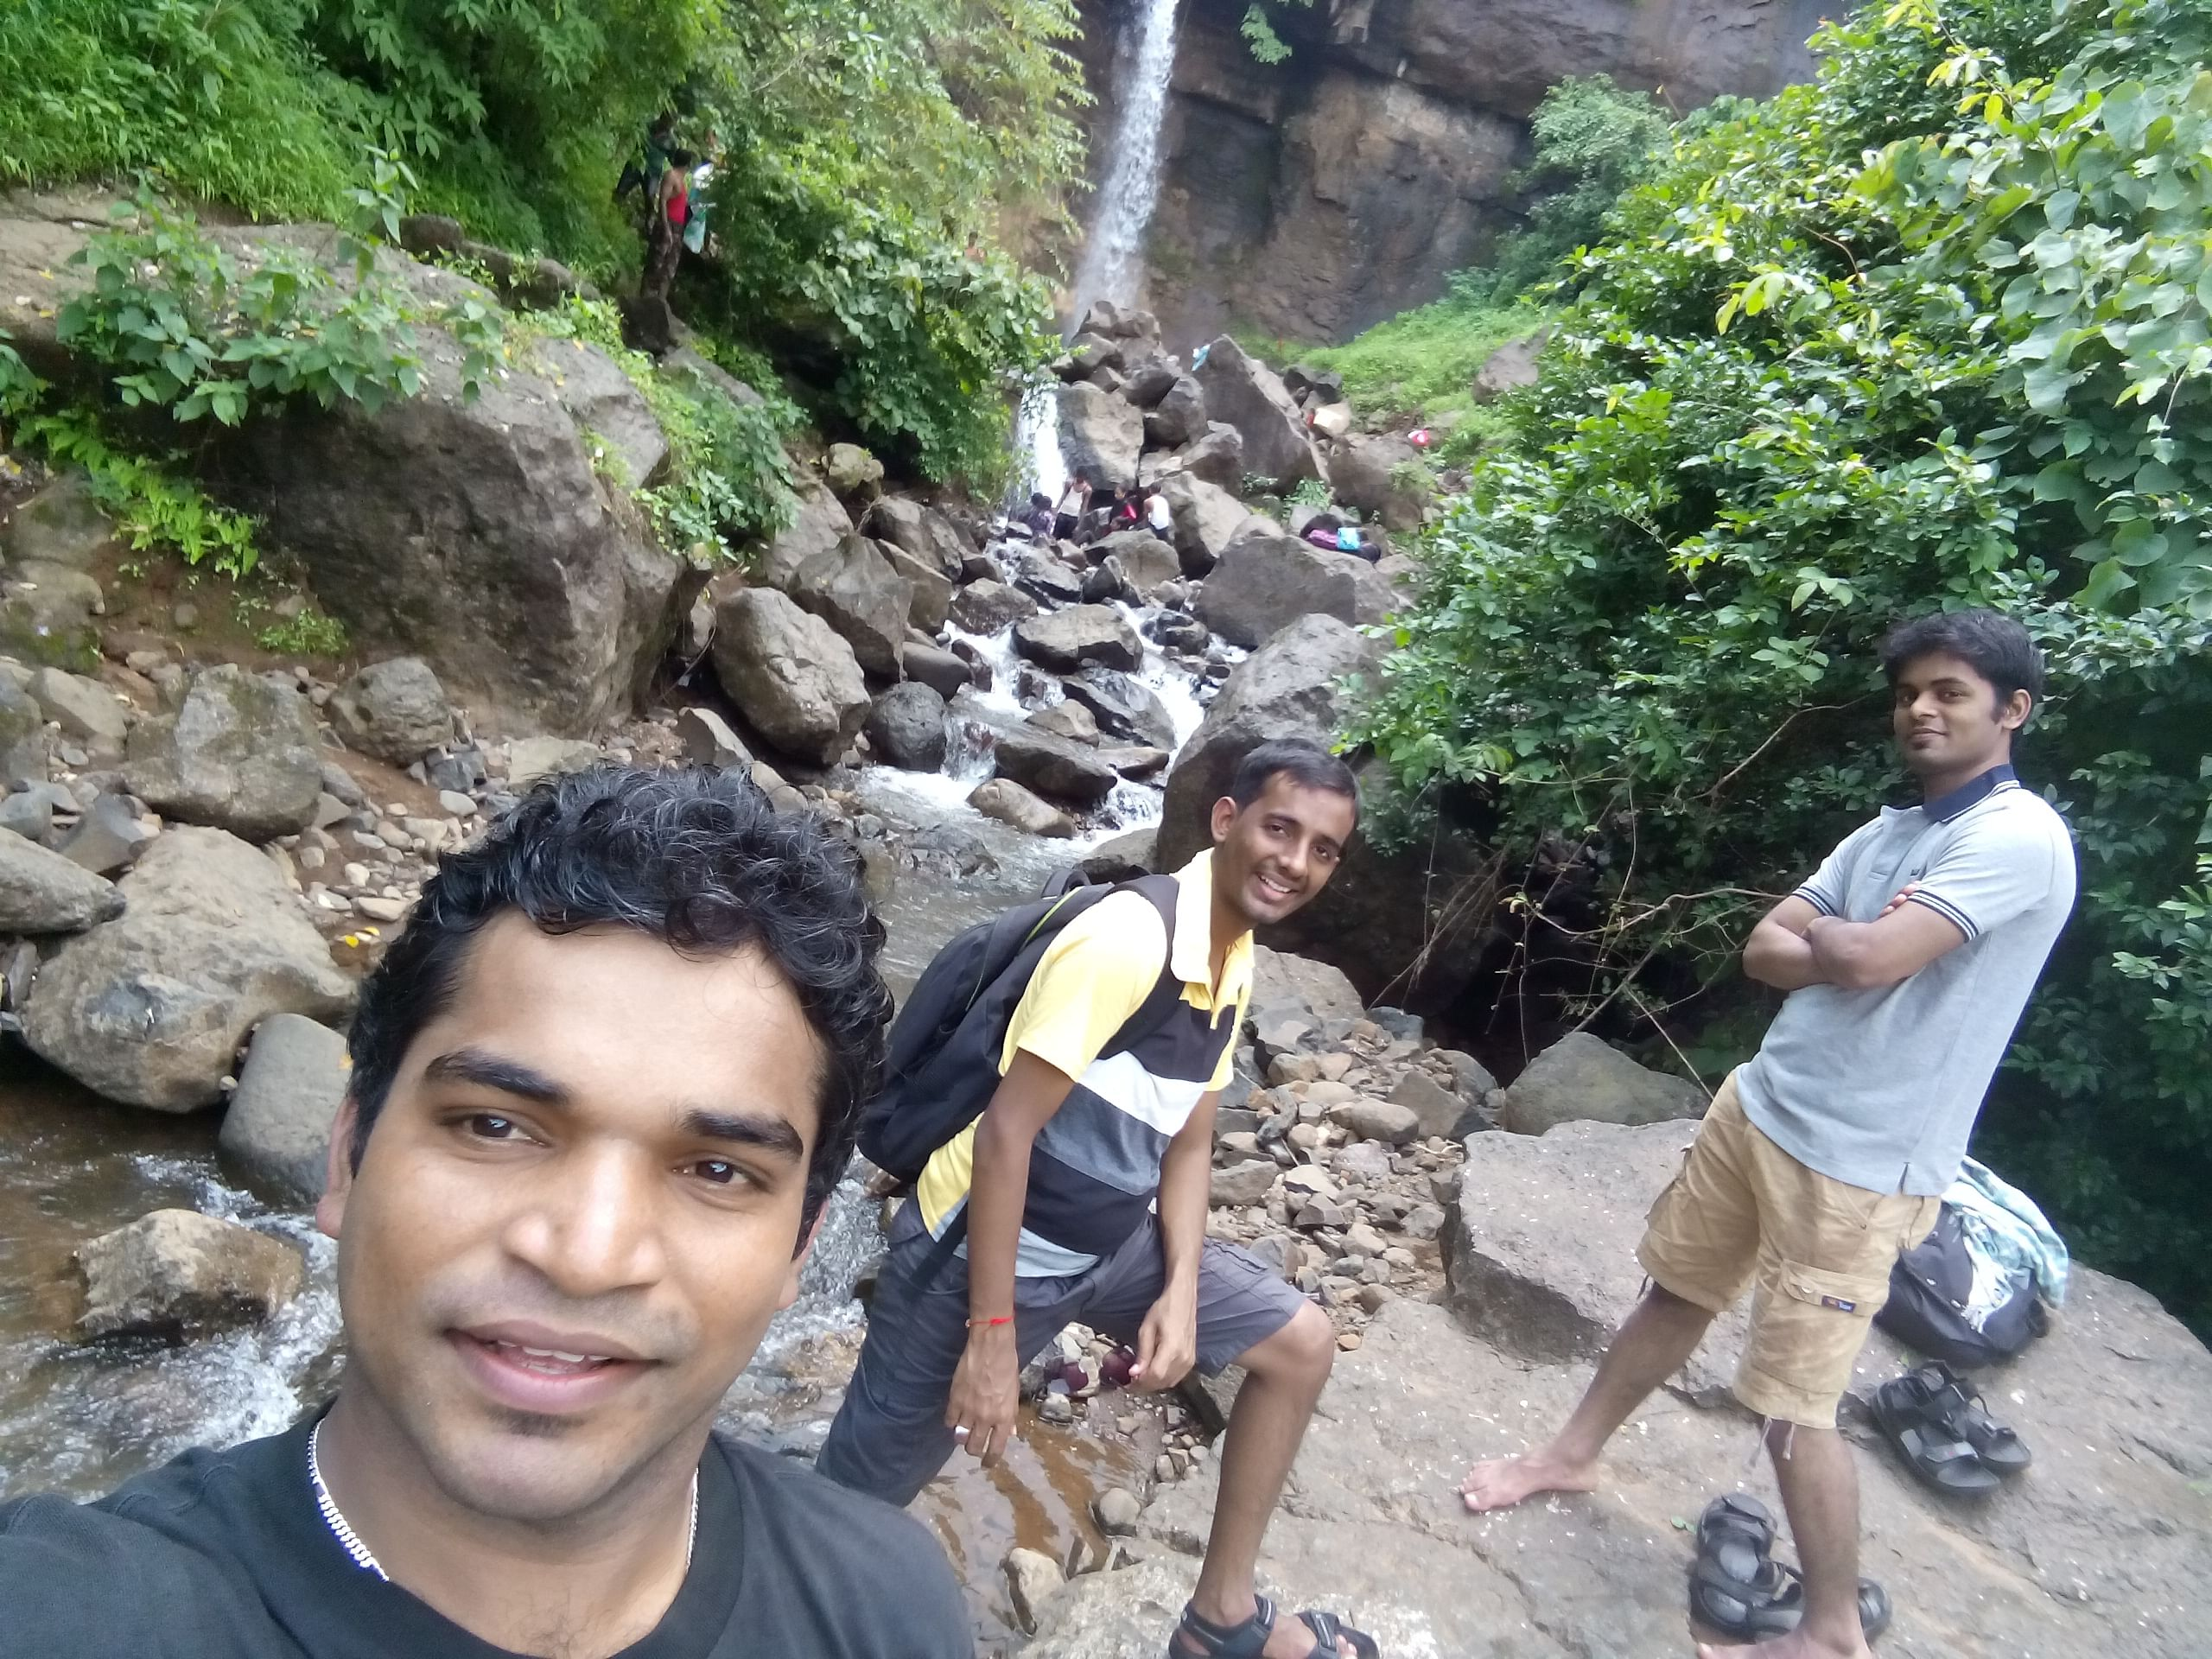 This Waste Warrior From Mumbai has Cleaned 6.7 Tonnes of Trash From 11 Waterfalls! (1)